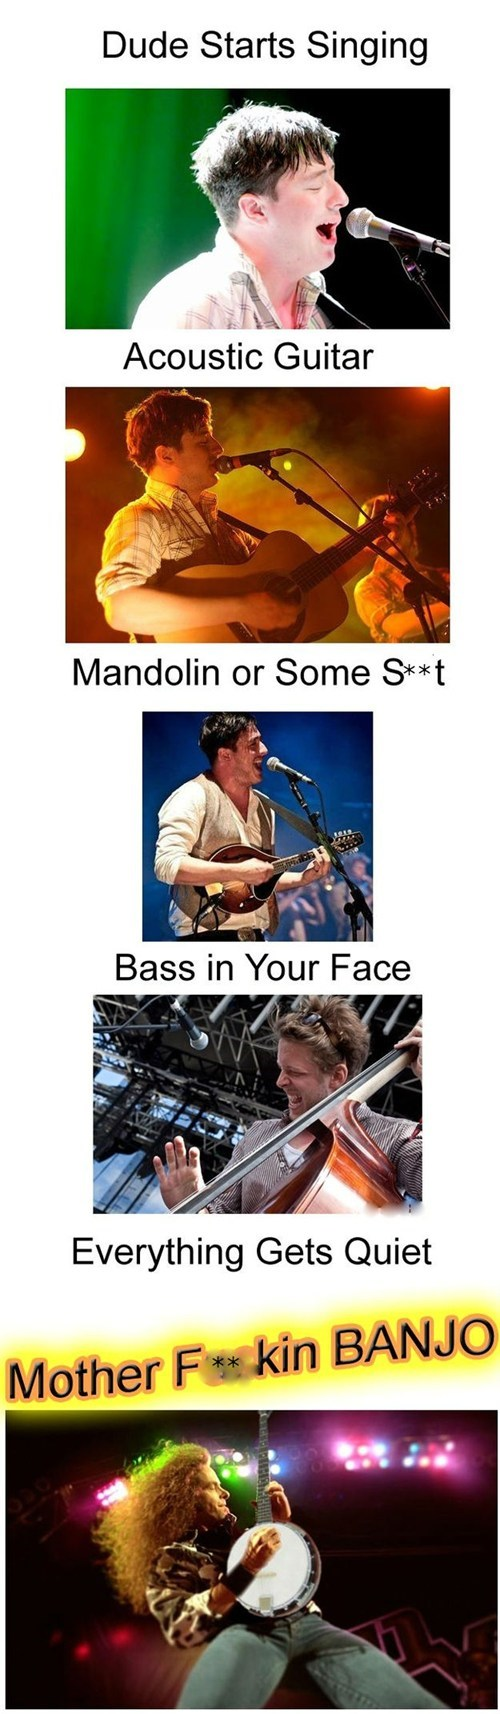 banjo,mumford and sons,formulas,Music FAILS